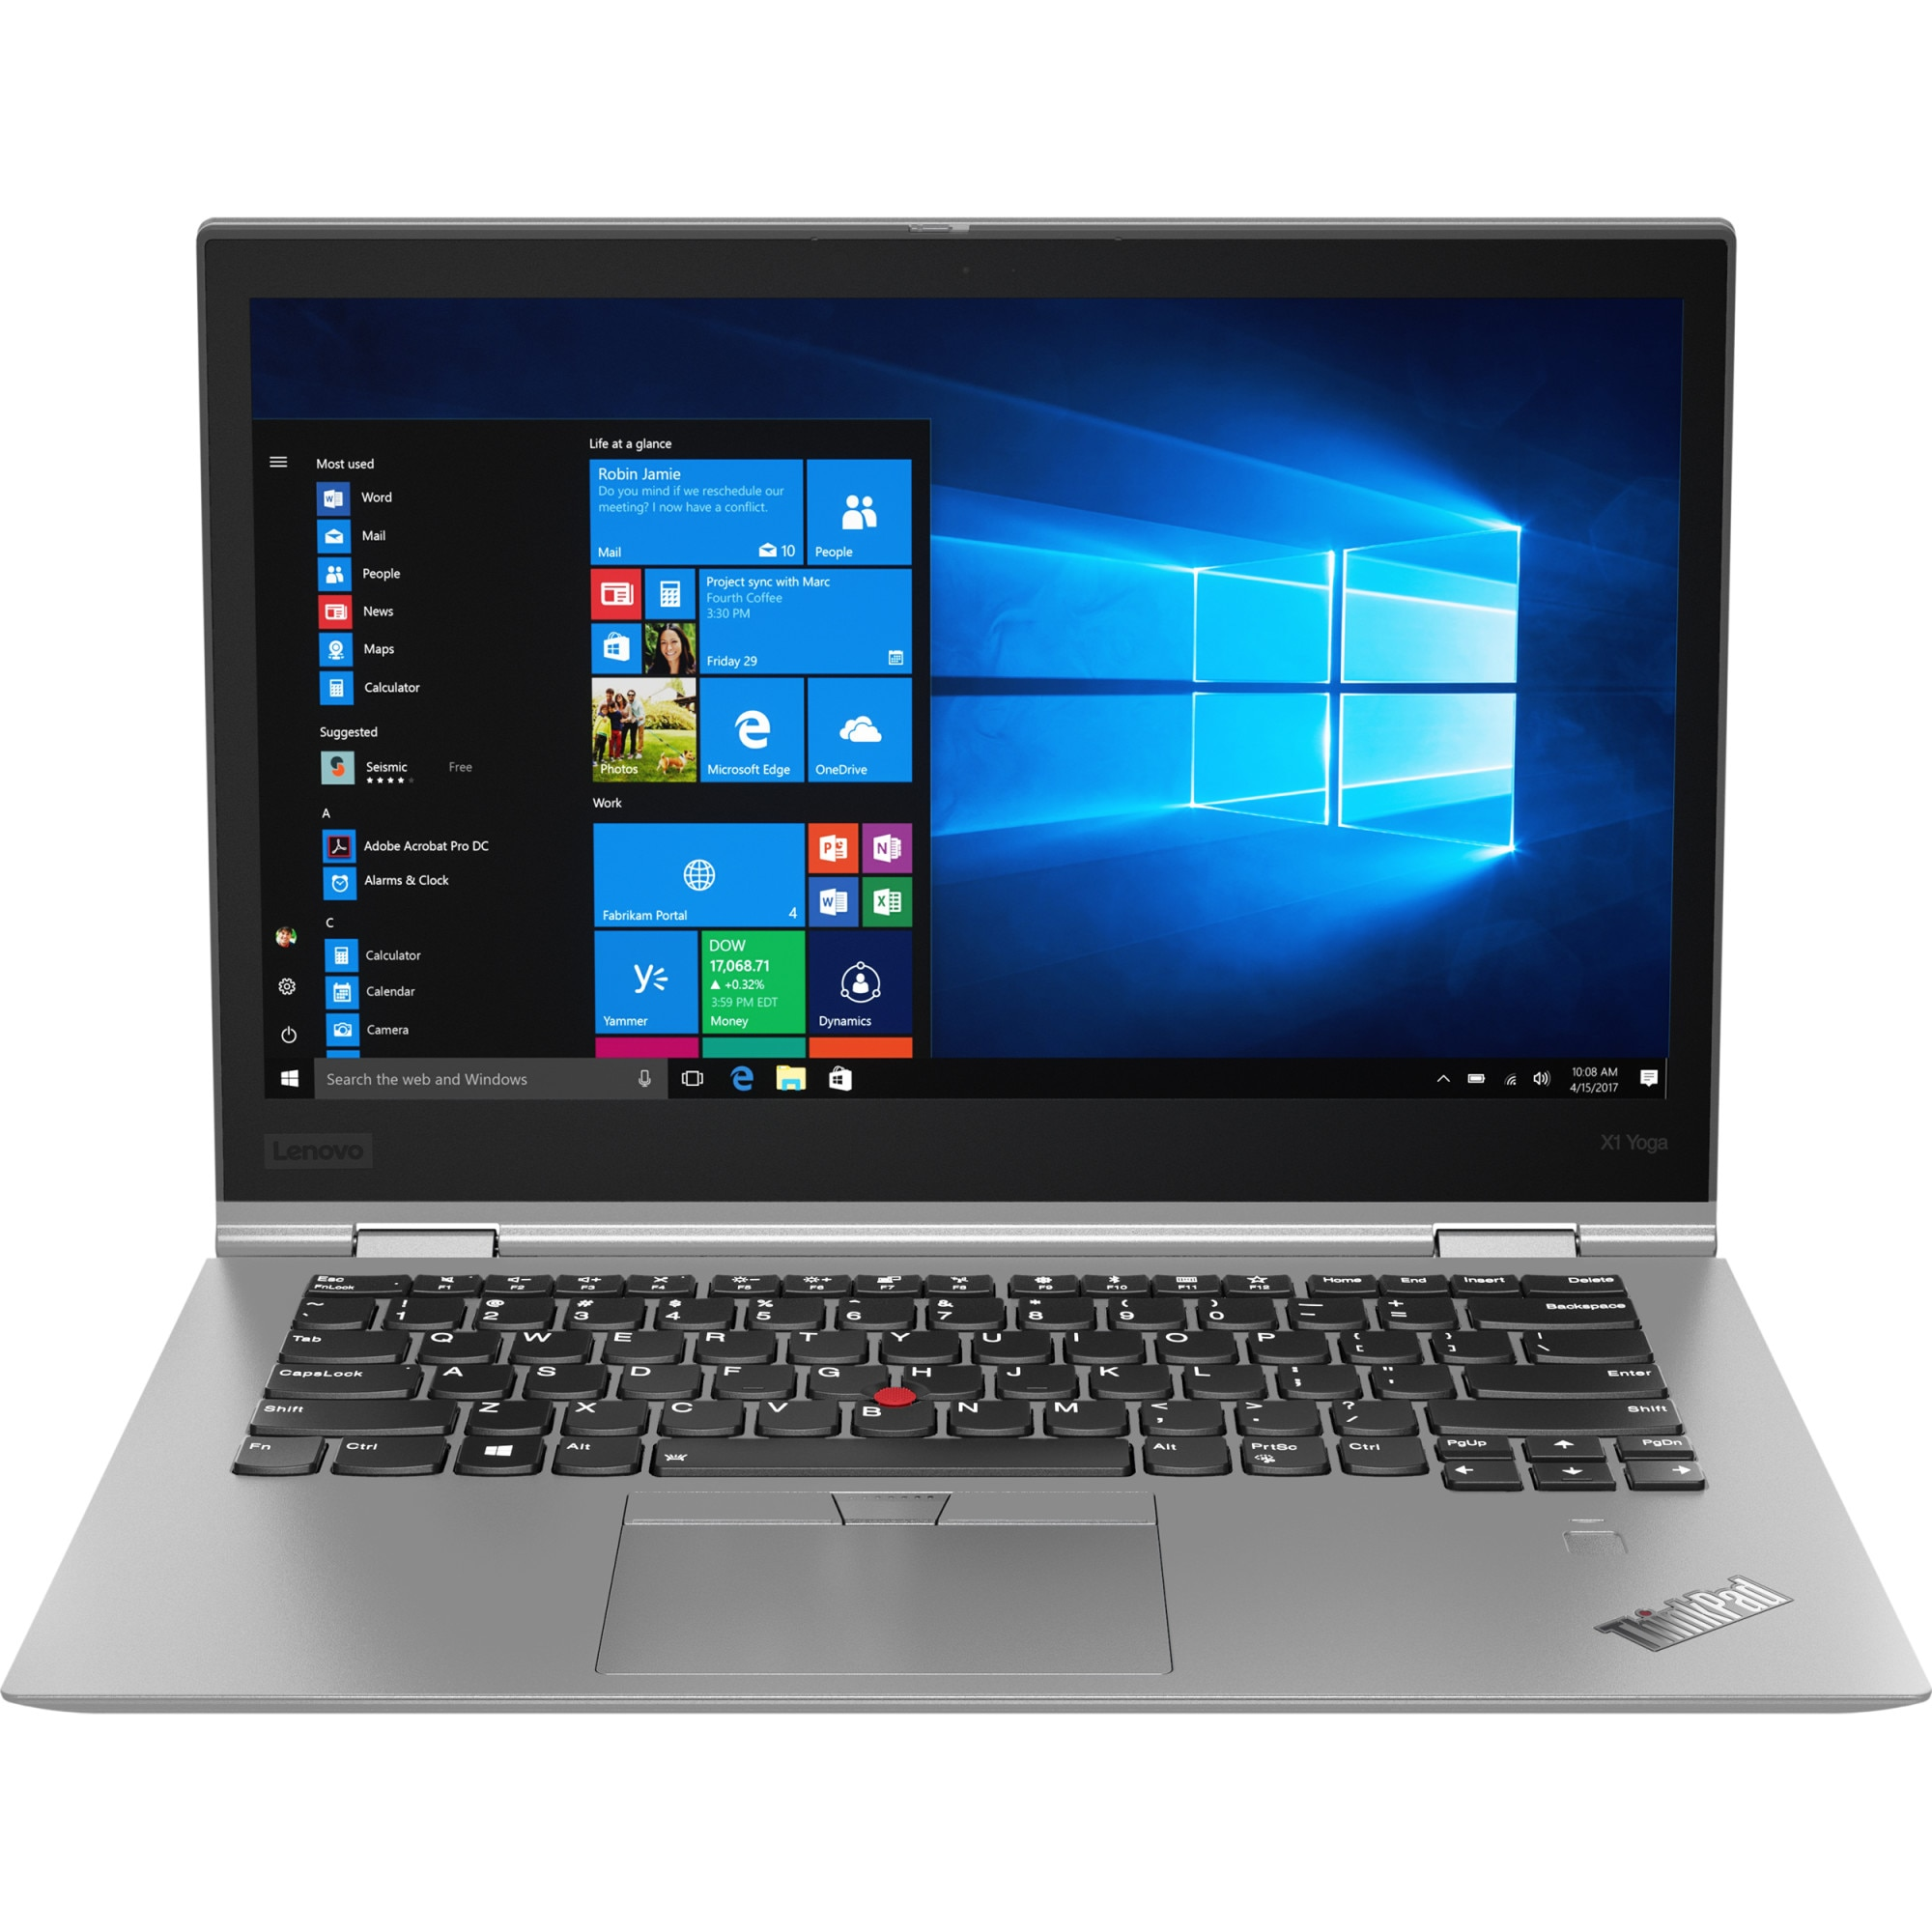 "Fotografie Laptop 2 in 1 Lenovo ThinkPad X1 Yoga (3nd Gen) cu procesor Intel® Core™ i7-8550U pana la 4.00 GHz, Kaby Lake R, 14"", WQHD, IPS, HDR, Touch, 16GB, 1TB SSD, Intel® UHD Graphics 620, 4G LTE, FPR, Microsoft Windows 10 Pro, Silver Silver"